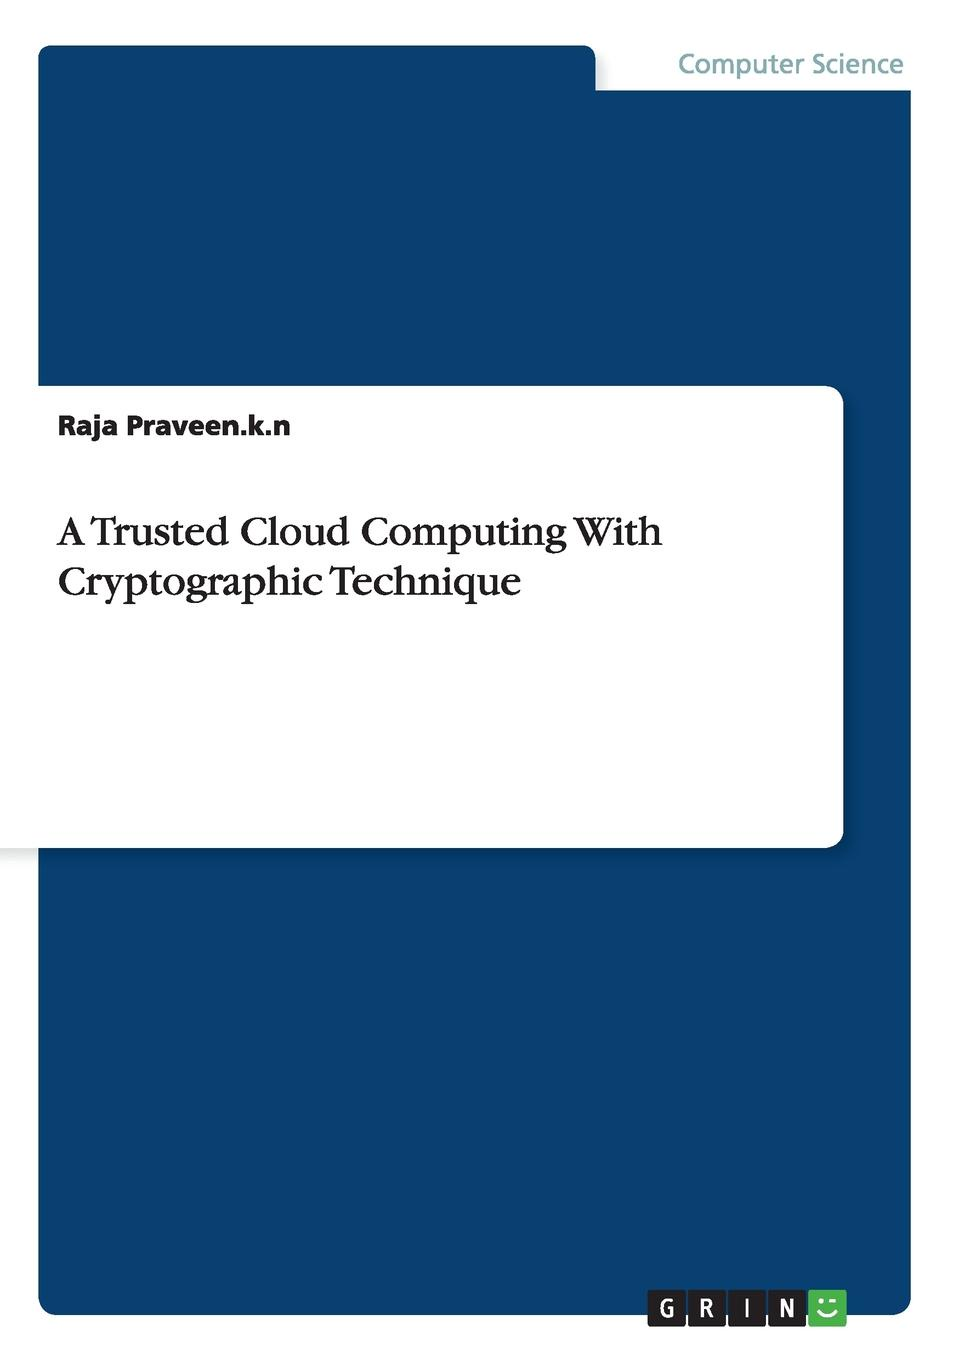 Raja Praveenkn A Trusted Cloud Computing With Cryptographic Technique